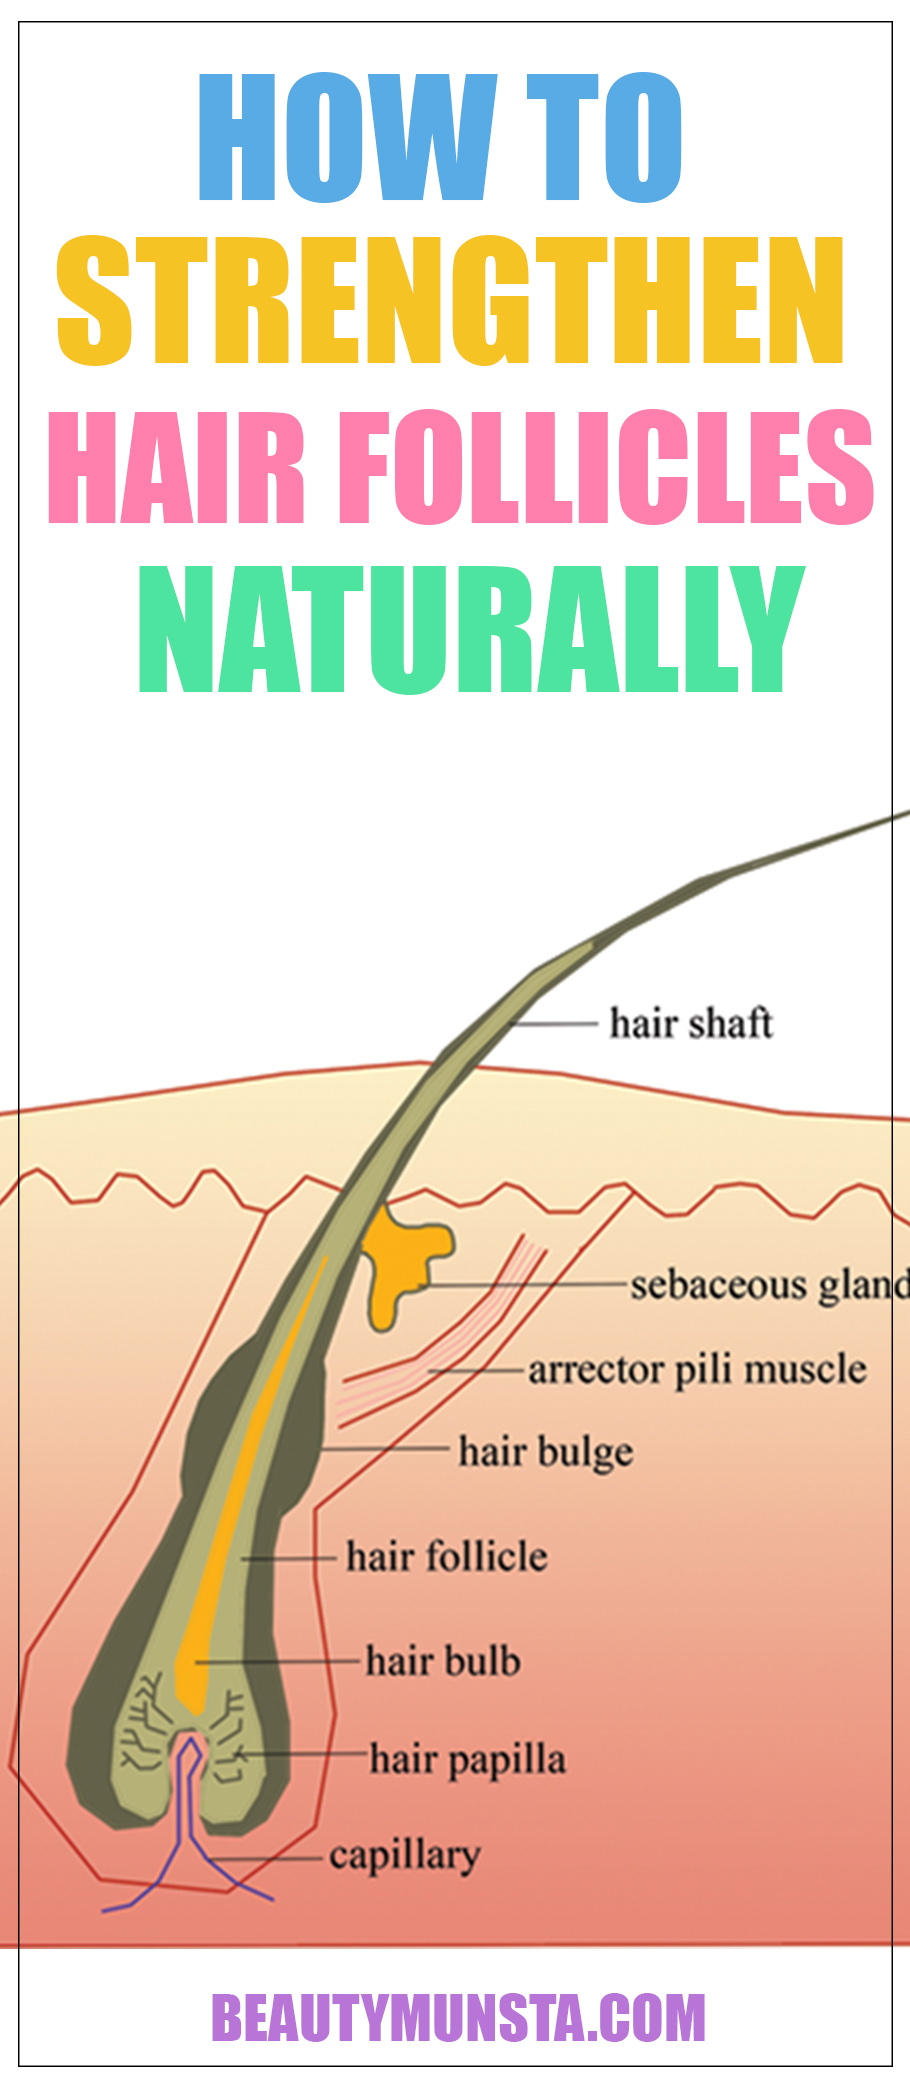 Before we look at how to strengthen hair follicles naturally, let's first understand what exactly hair follicles are and what their purpose is in promoting healthy and strong hair.